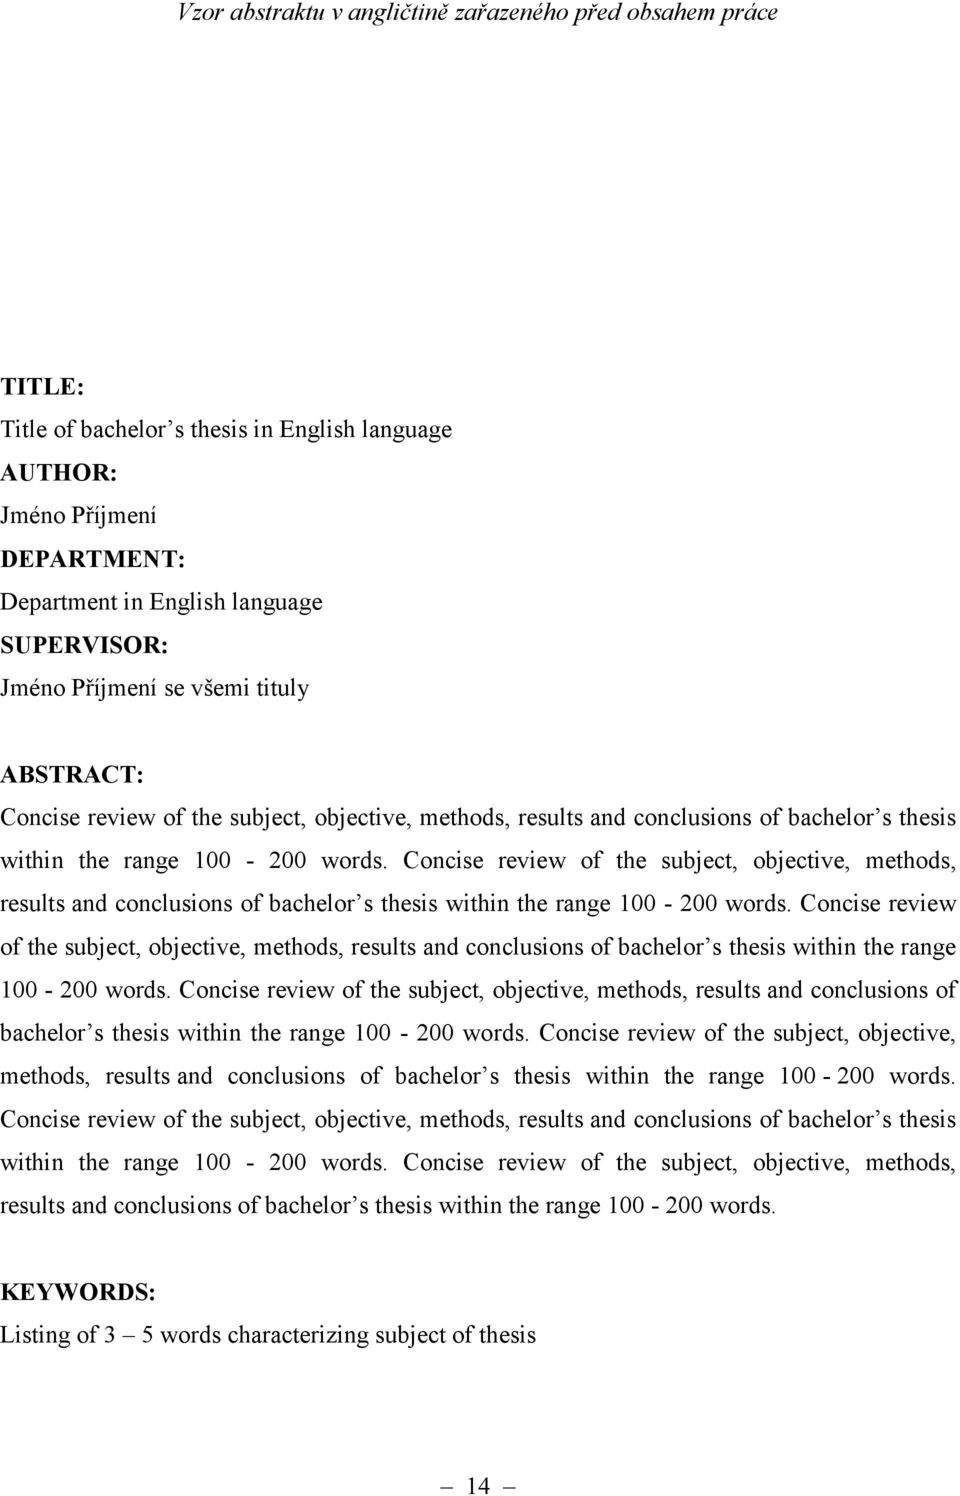 Concise review of the subject, objective, methods, results and conclusions of bachelor s thesis within the range 100-200 words.